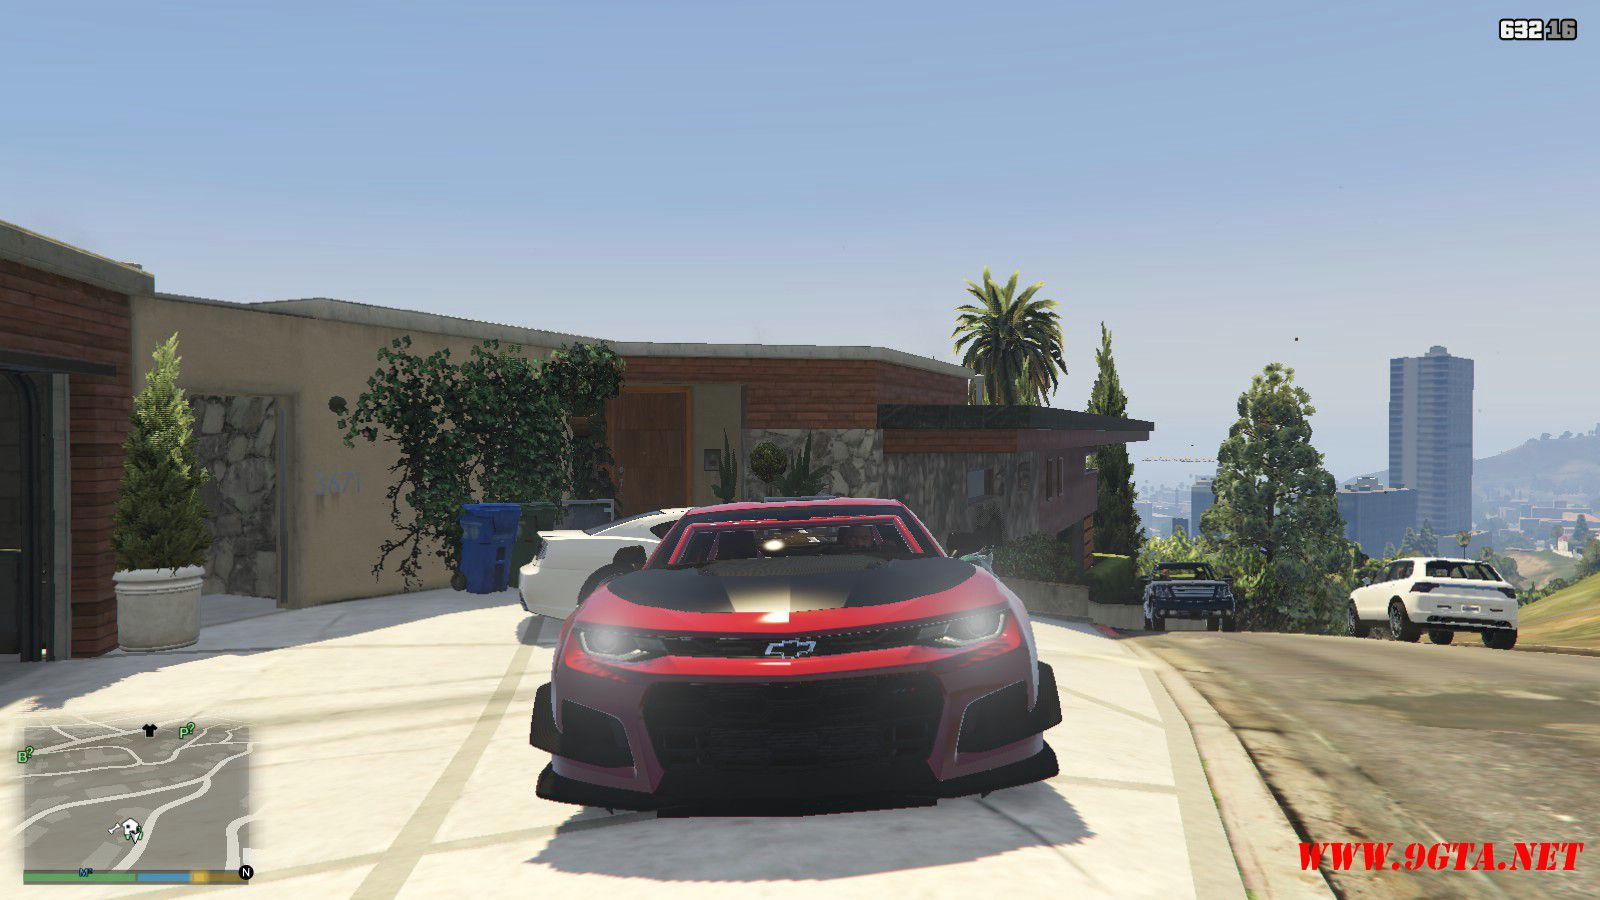 2018 Chevrolet Camaro ZL1 LE Mod For GTA5 (10)